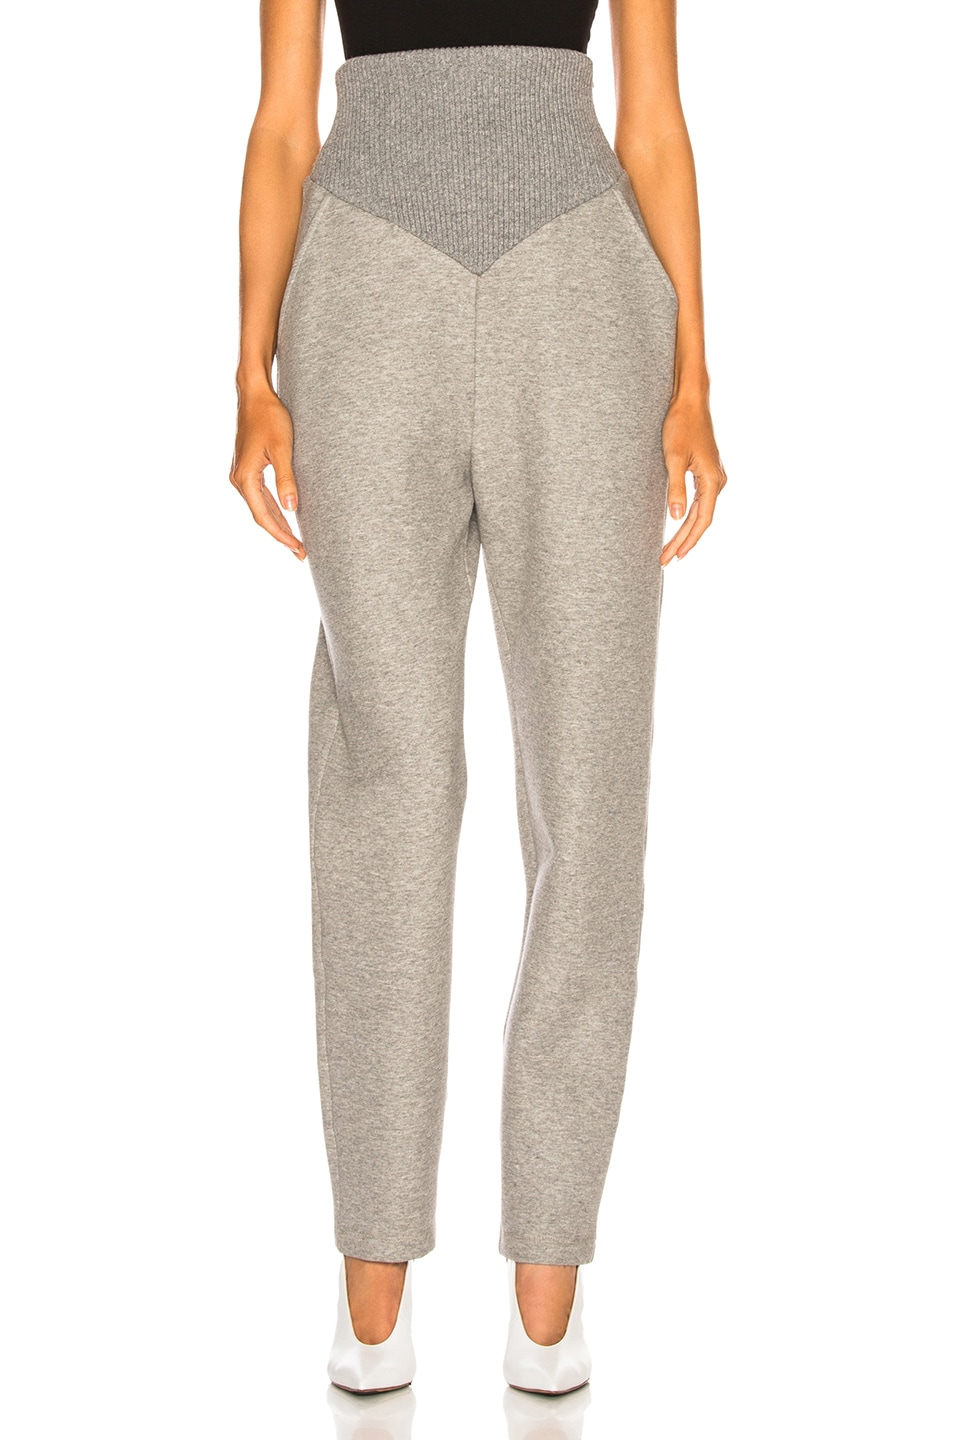 Sally Lapointe SALLY LAPOINTE COTTON JERSEY CORSETED SWEATPANT IN GREY